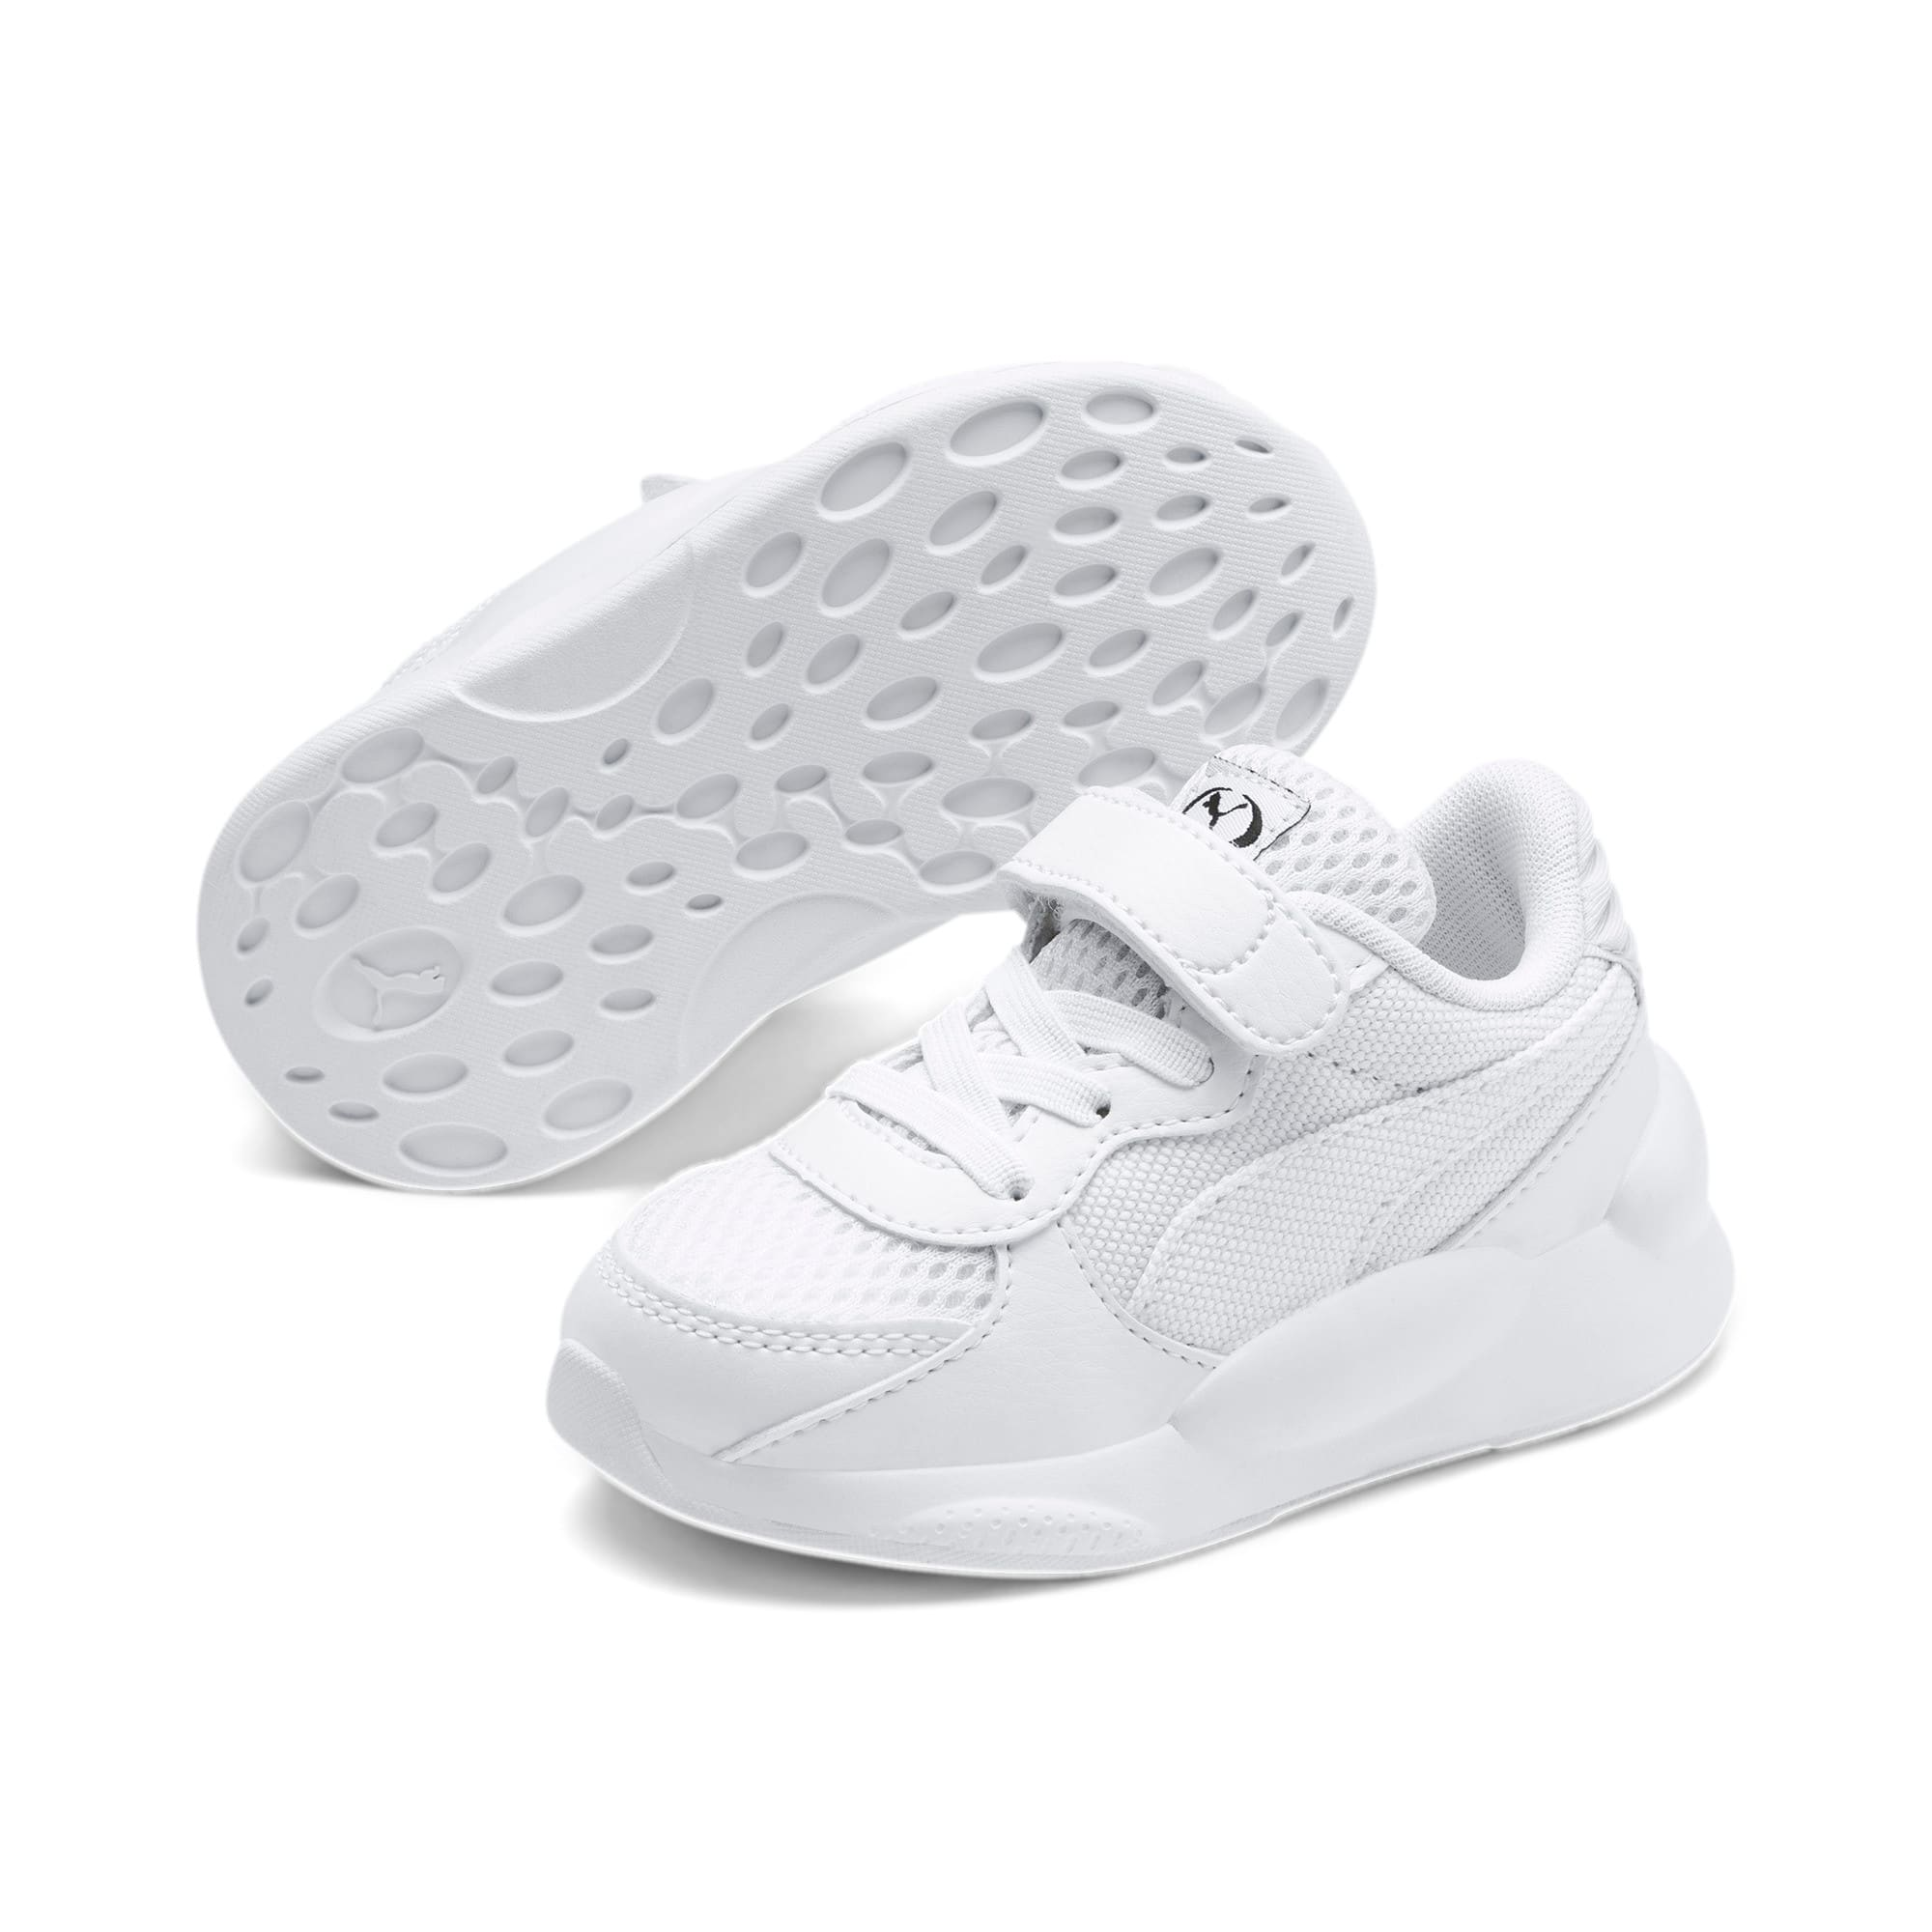 Thumbnail 2 of RS 9.8 Core Toddler Shoes, Puma White, medium